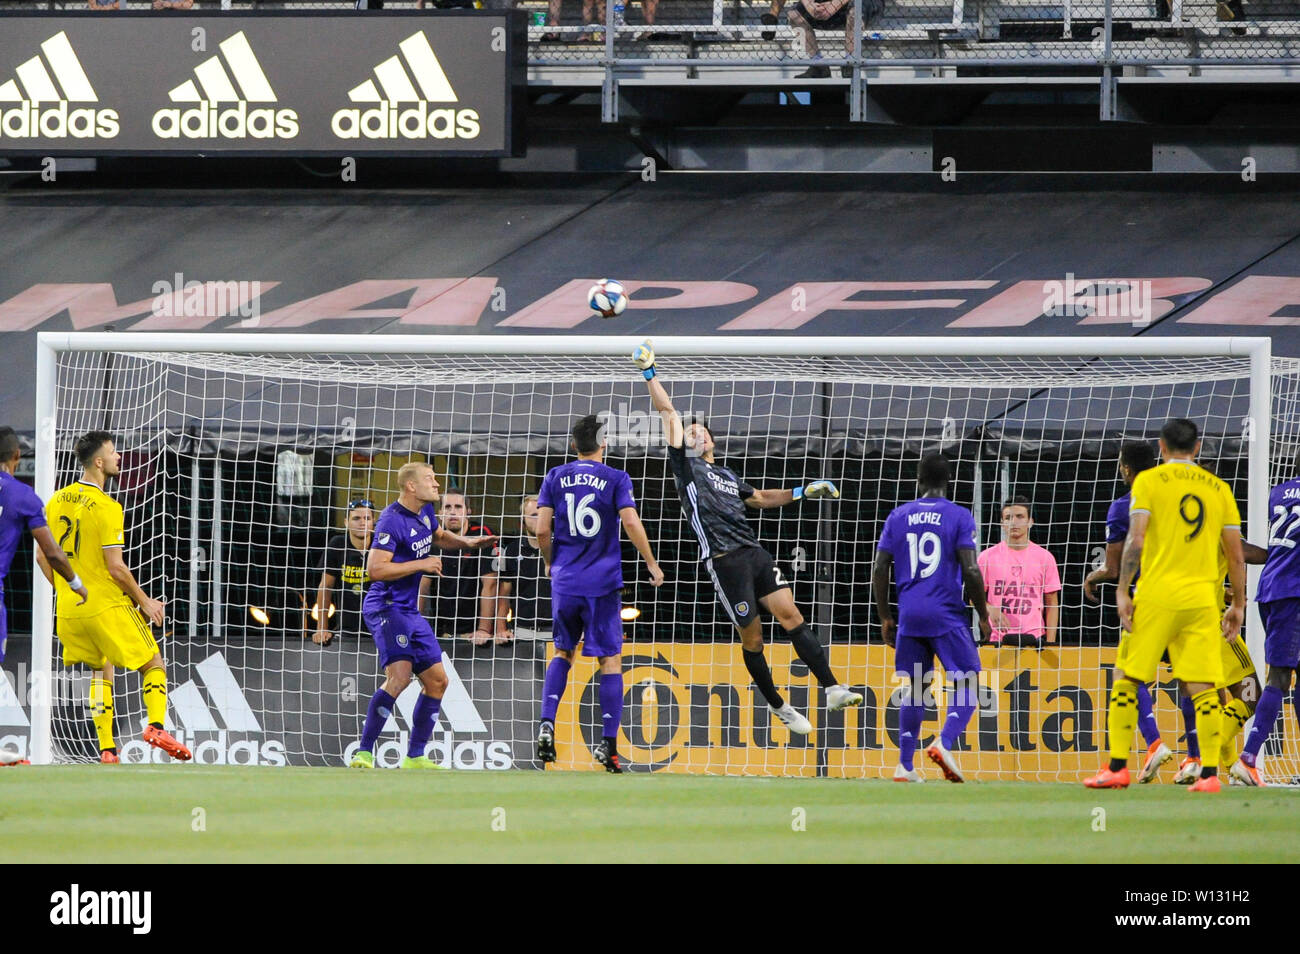 Saturday, June 29, 2019: Orlando City goalkeeper Brian Rowe (23) punches the ball away the first half of the match between Orlando City and Columbus Crew SC at MAPFRE Stadium, in Columbus OH. Mandatory Photo Credit: Dorn Byg/Cal Sport Media. Orlando City 2 - Columbus Crew SC 0 at the end of the match - Stock Image